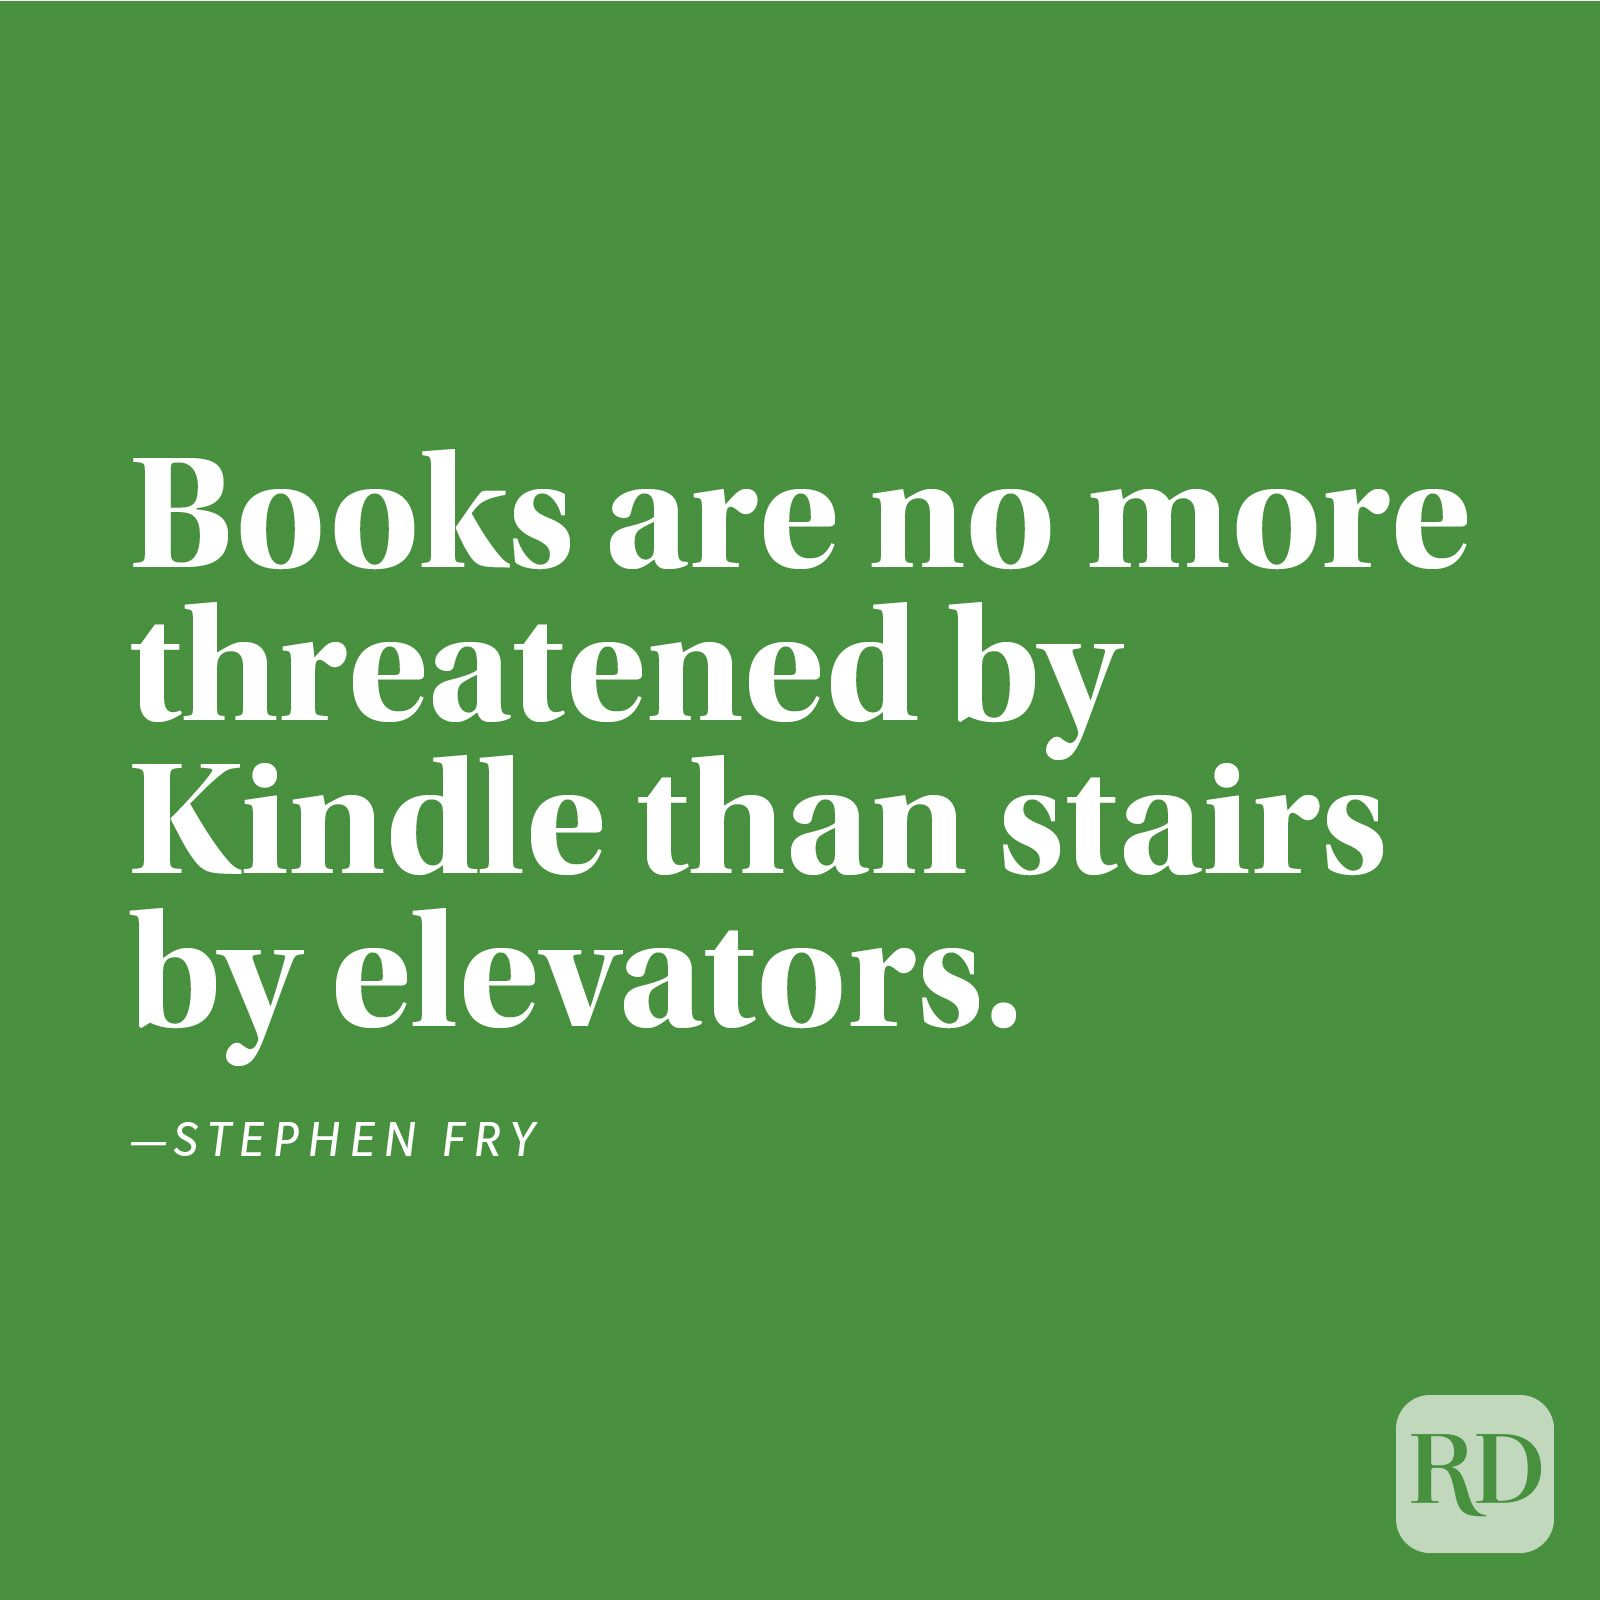 """Books are no more threatened by Kindle than stairs by elevators."" —Stephen Fry"